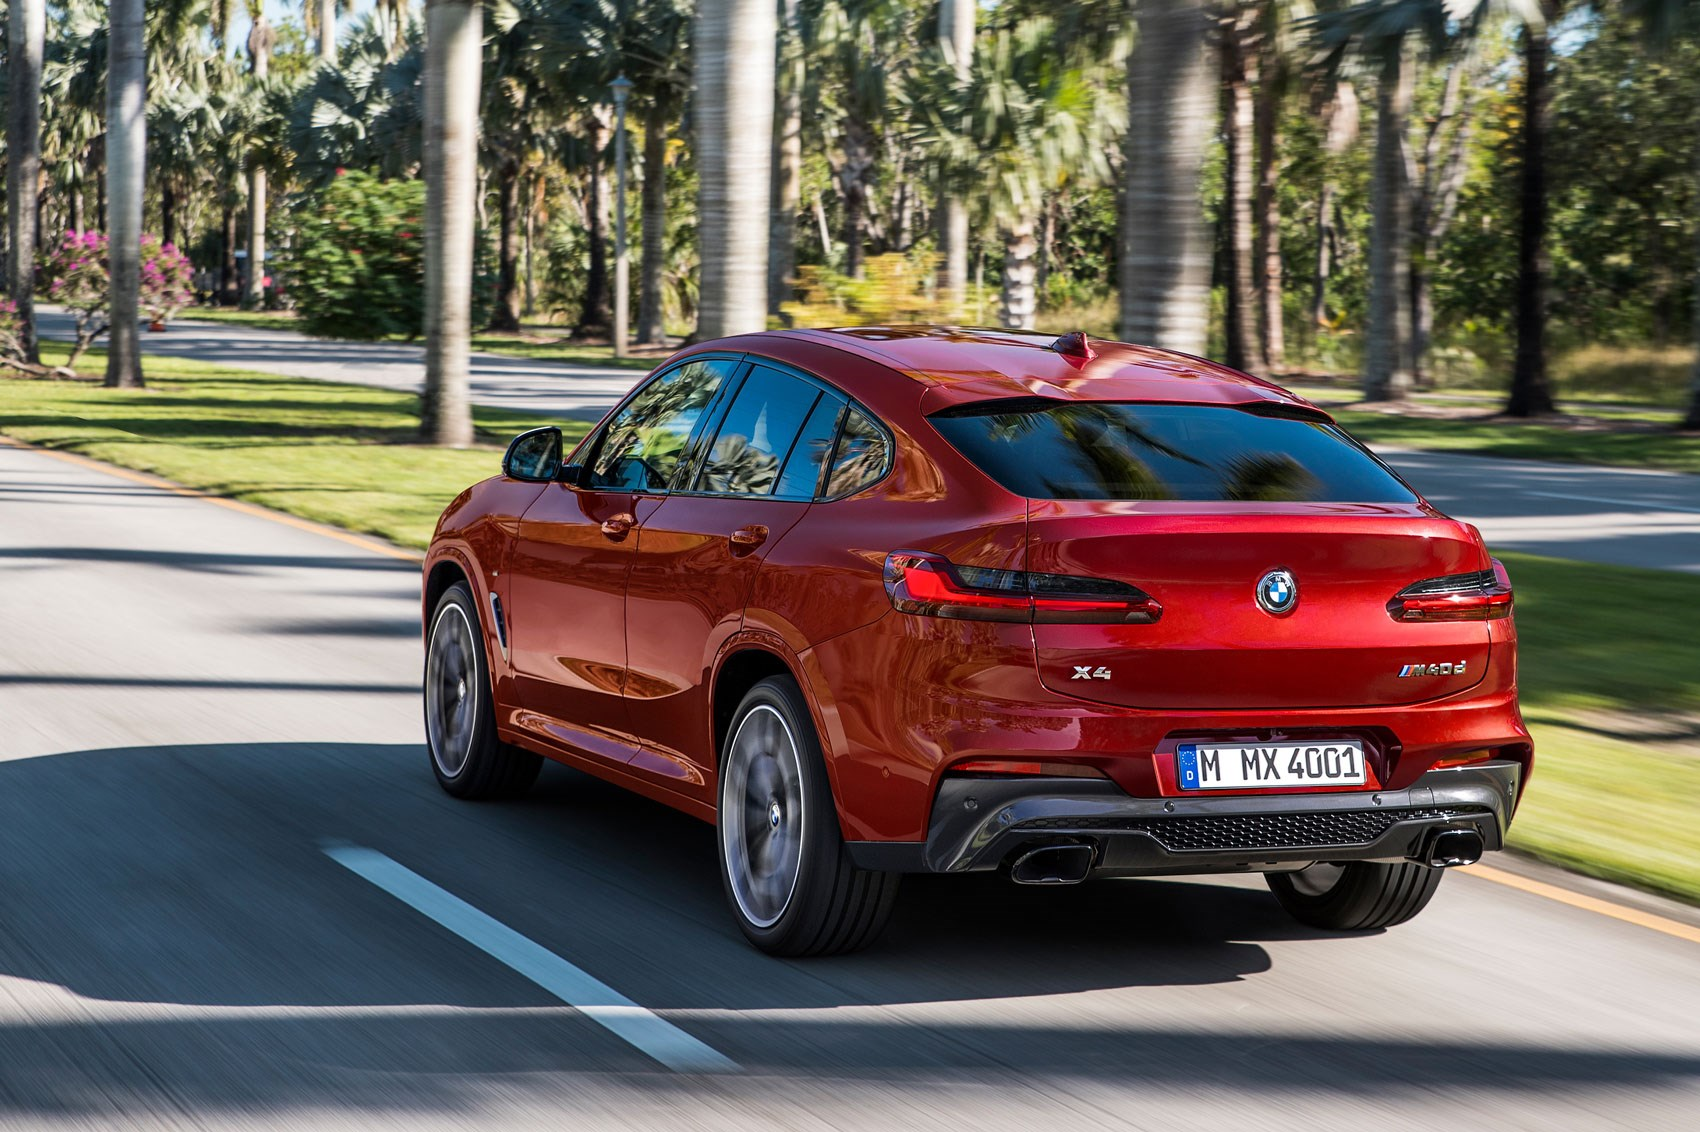 Generation X Hot Bmw X4 M40i Coming To New York Show Car Magazine